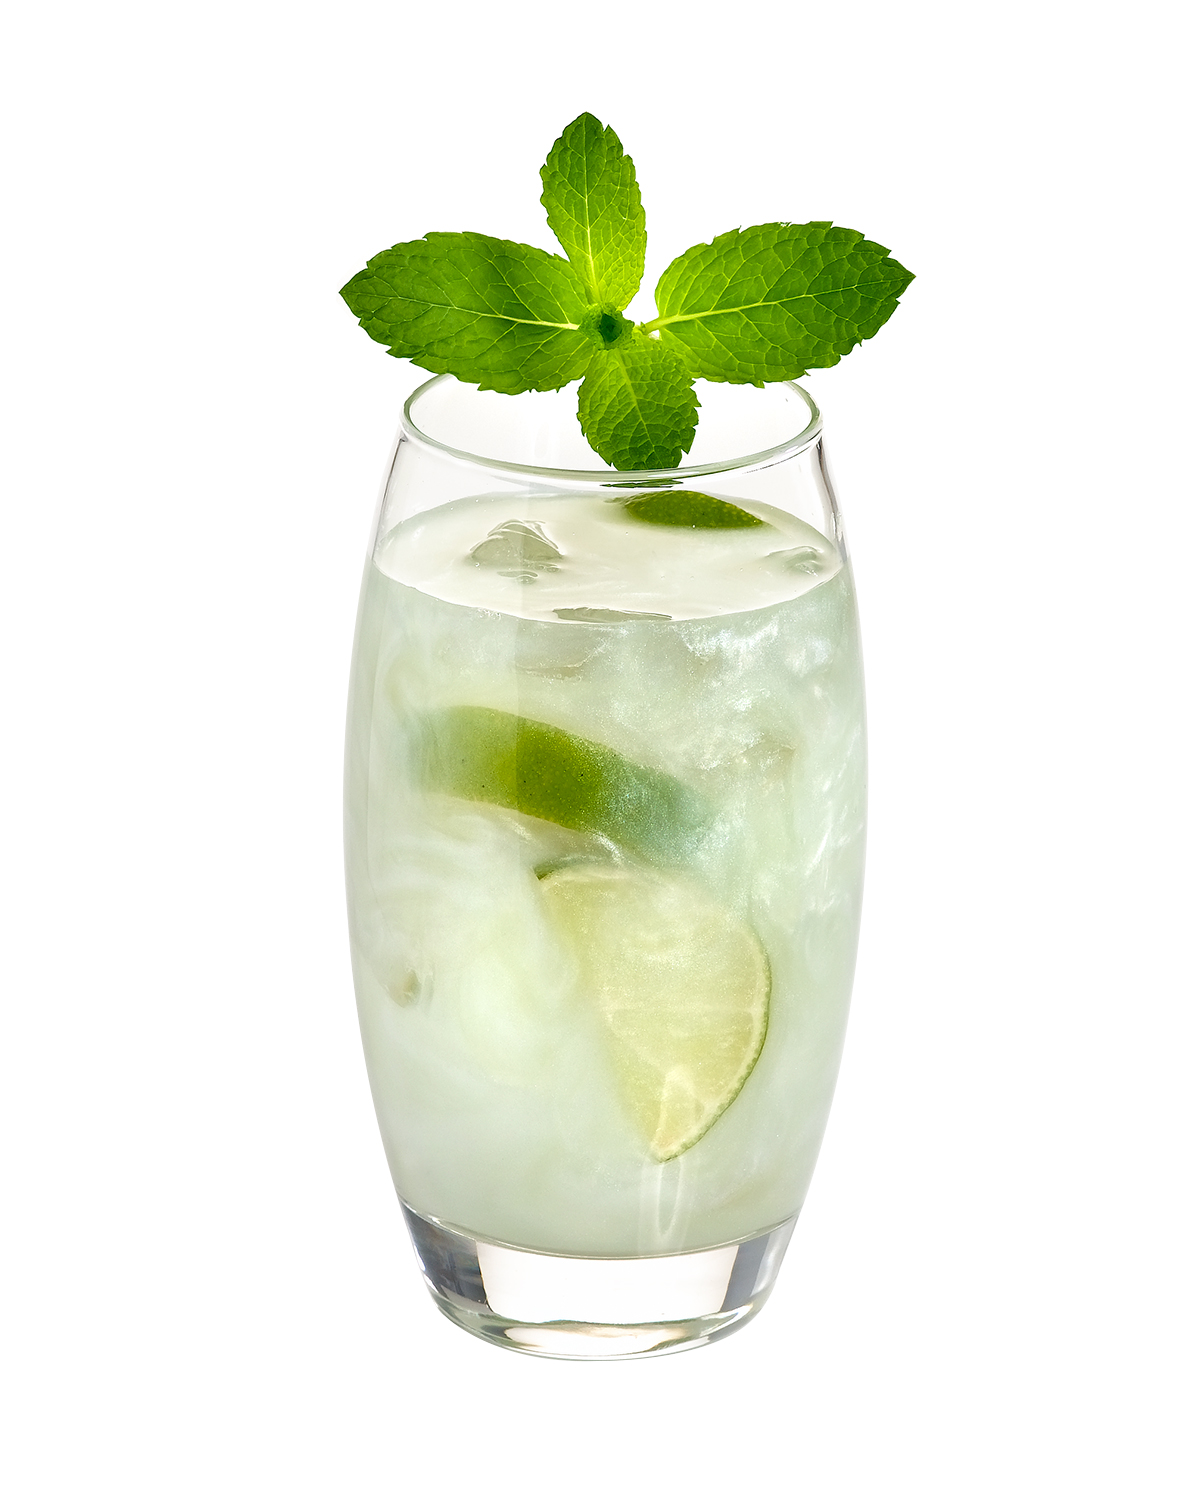 https://www.mirelys.eu/wp-content/uploads/2018/02/cocktail-mojito-hd.jpg